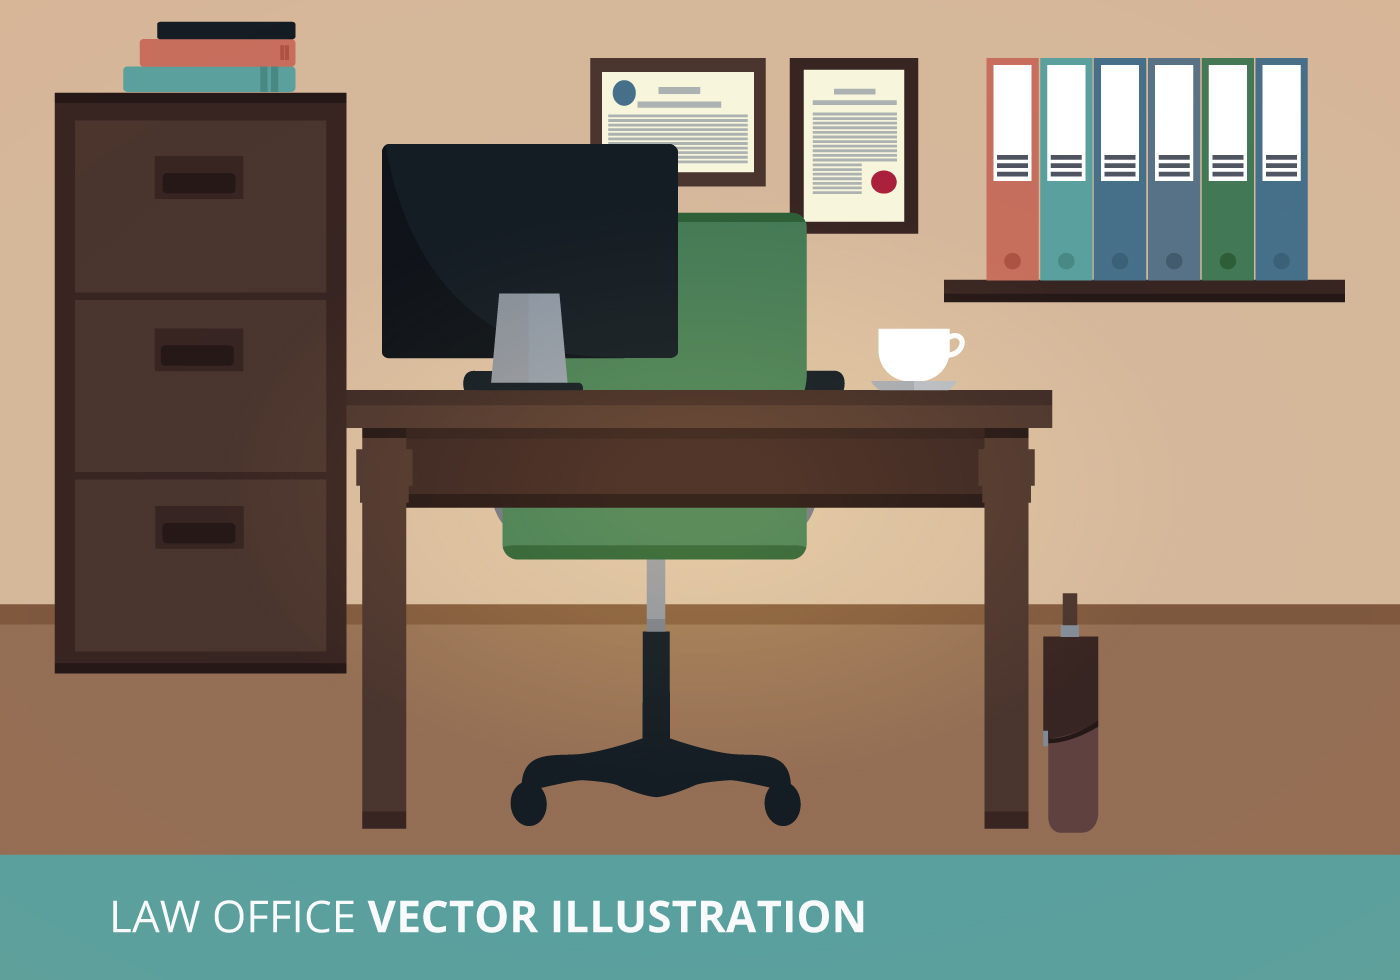 Computer chair back support - Law Office Vector Illustration Download Free Vector Art